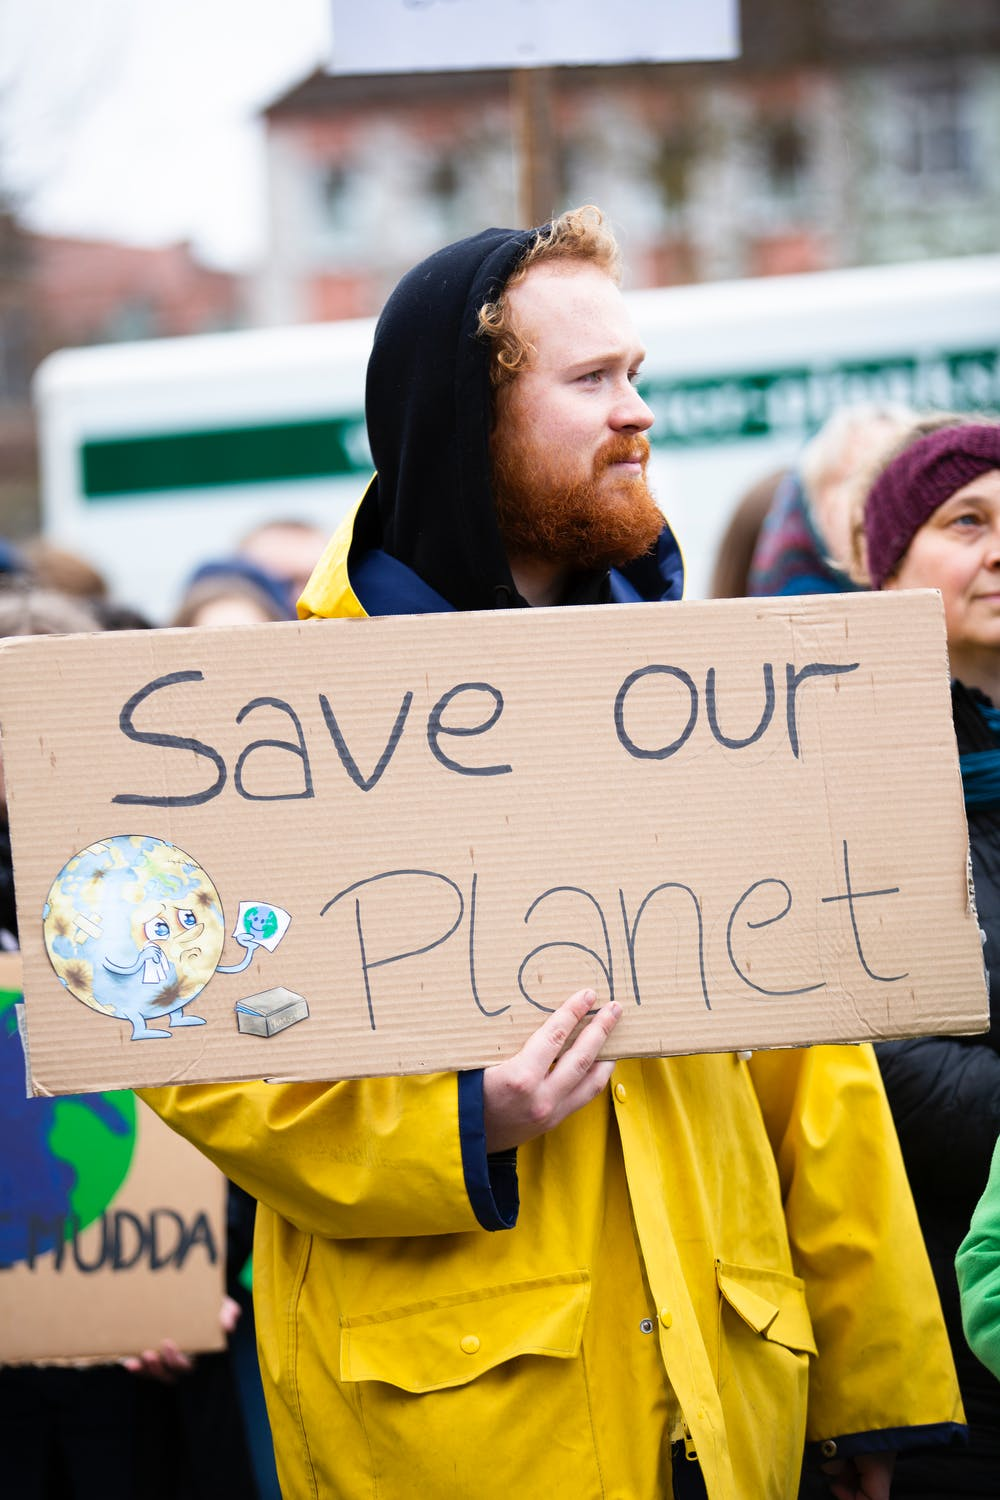 Save Our Planet Sign with Cartoon